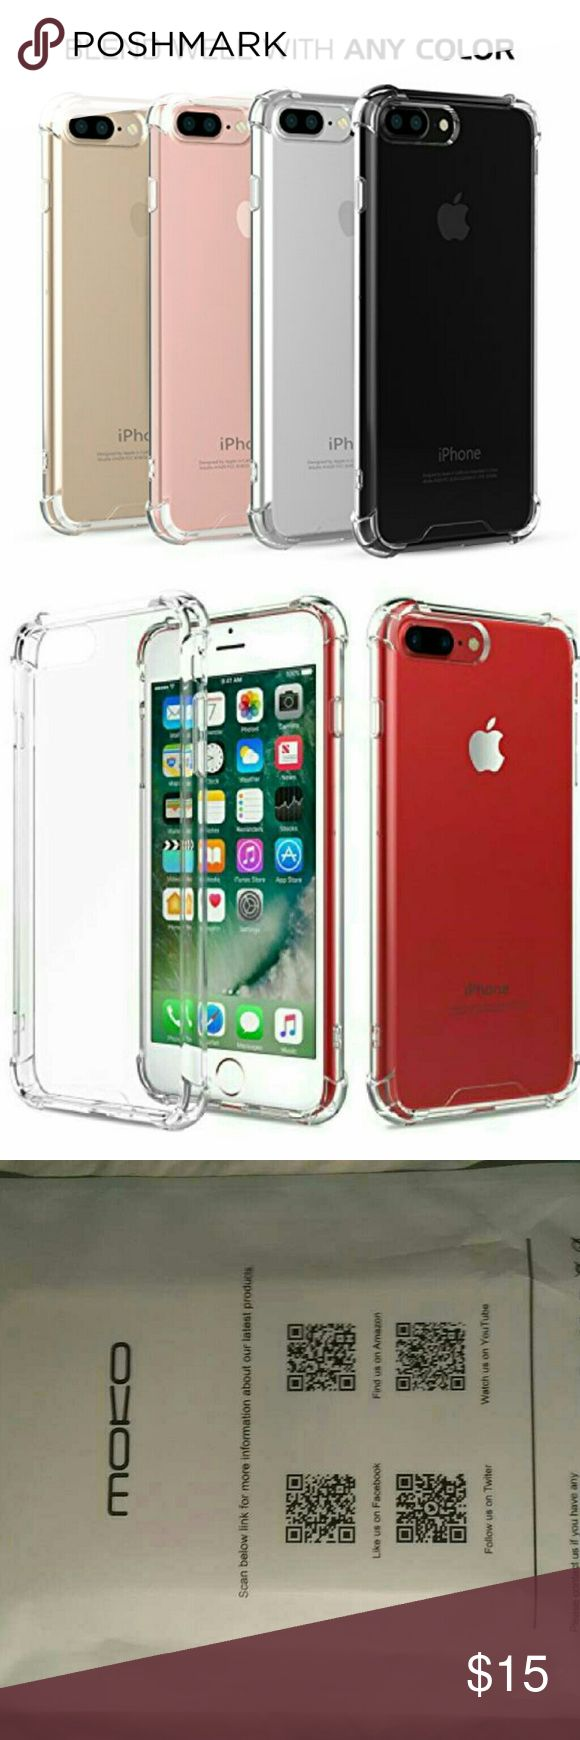 Moko clear case iphone 7 plus I phone 7 plus case clear Moko Accessories Phone Cases